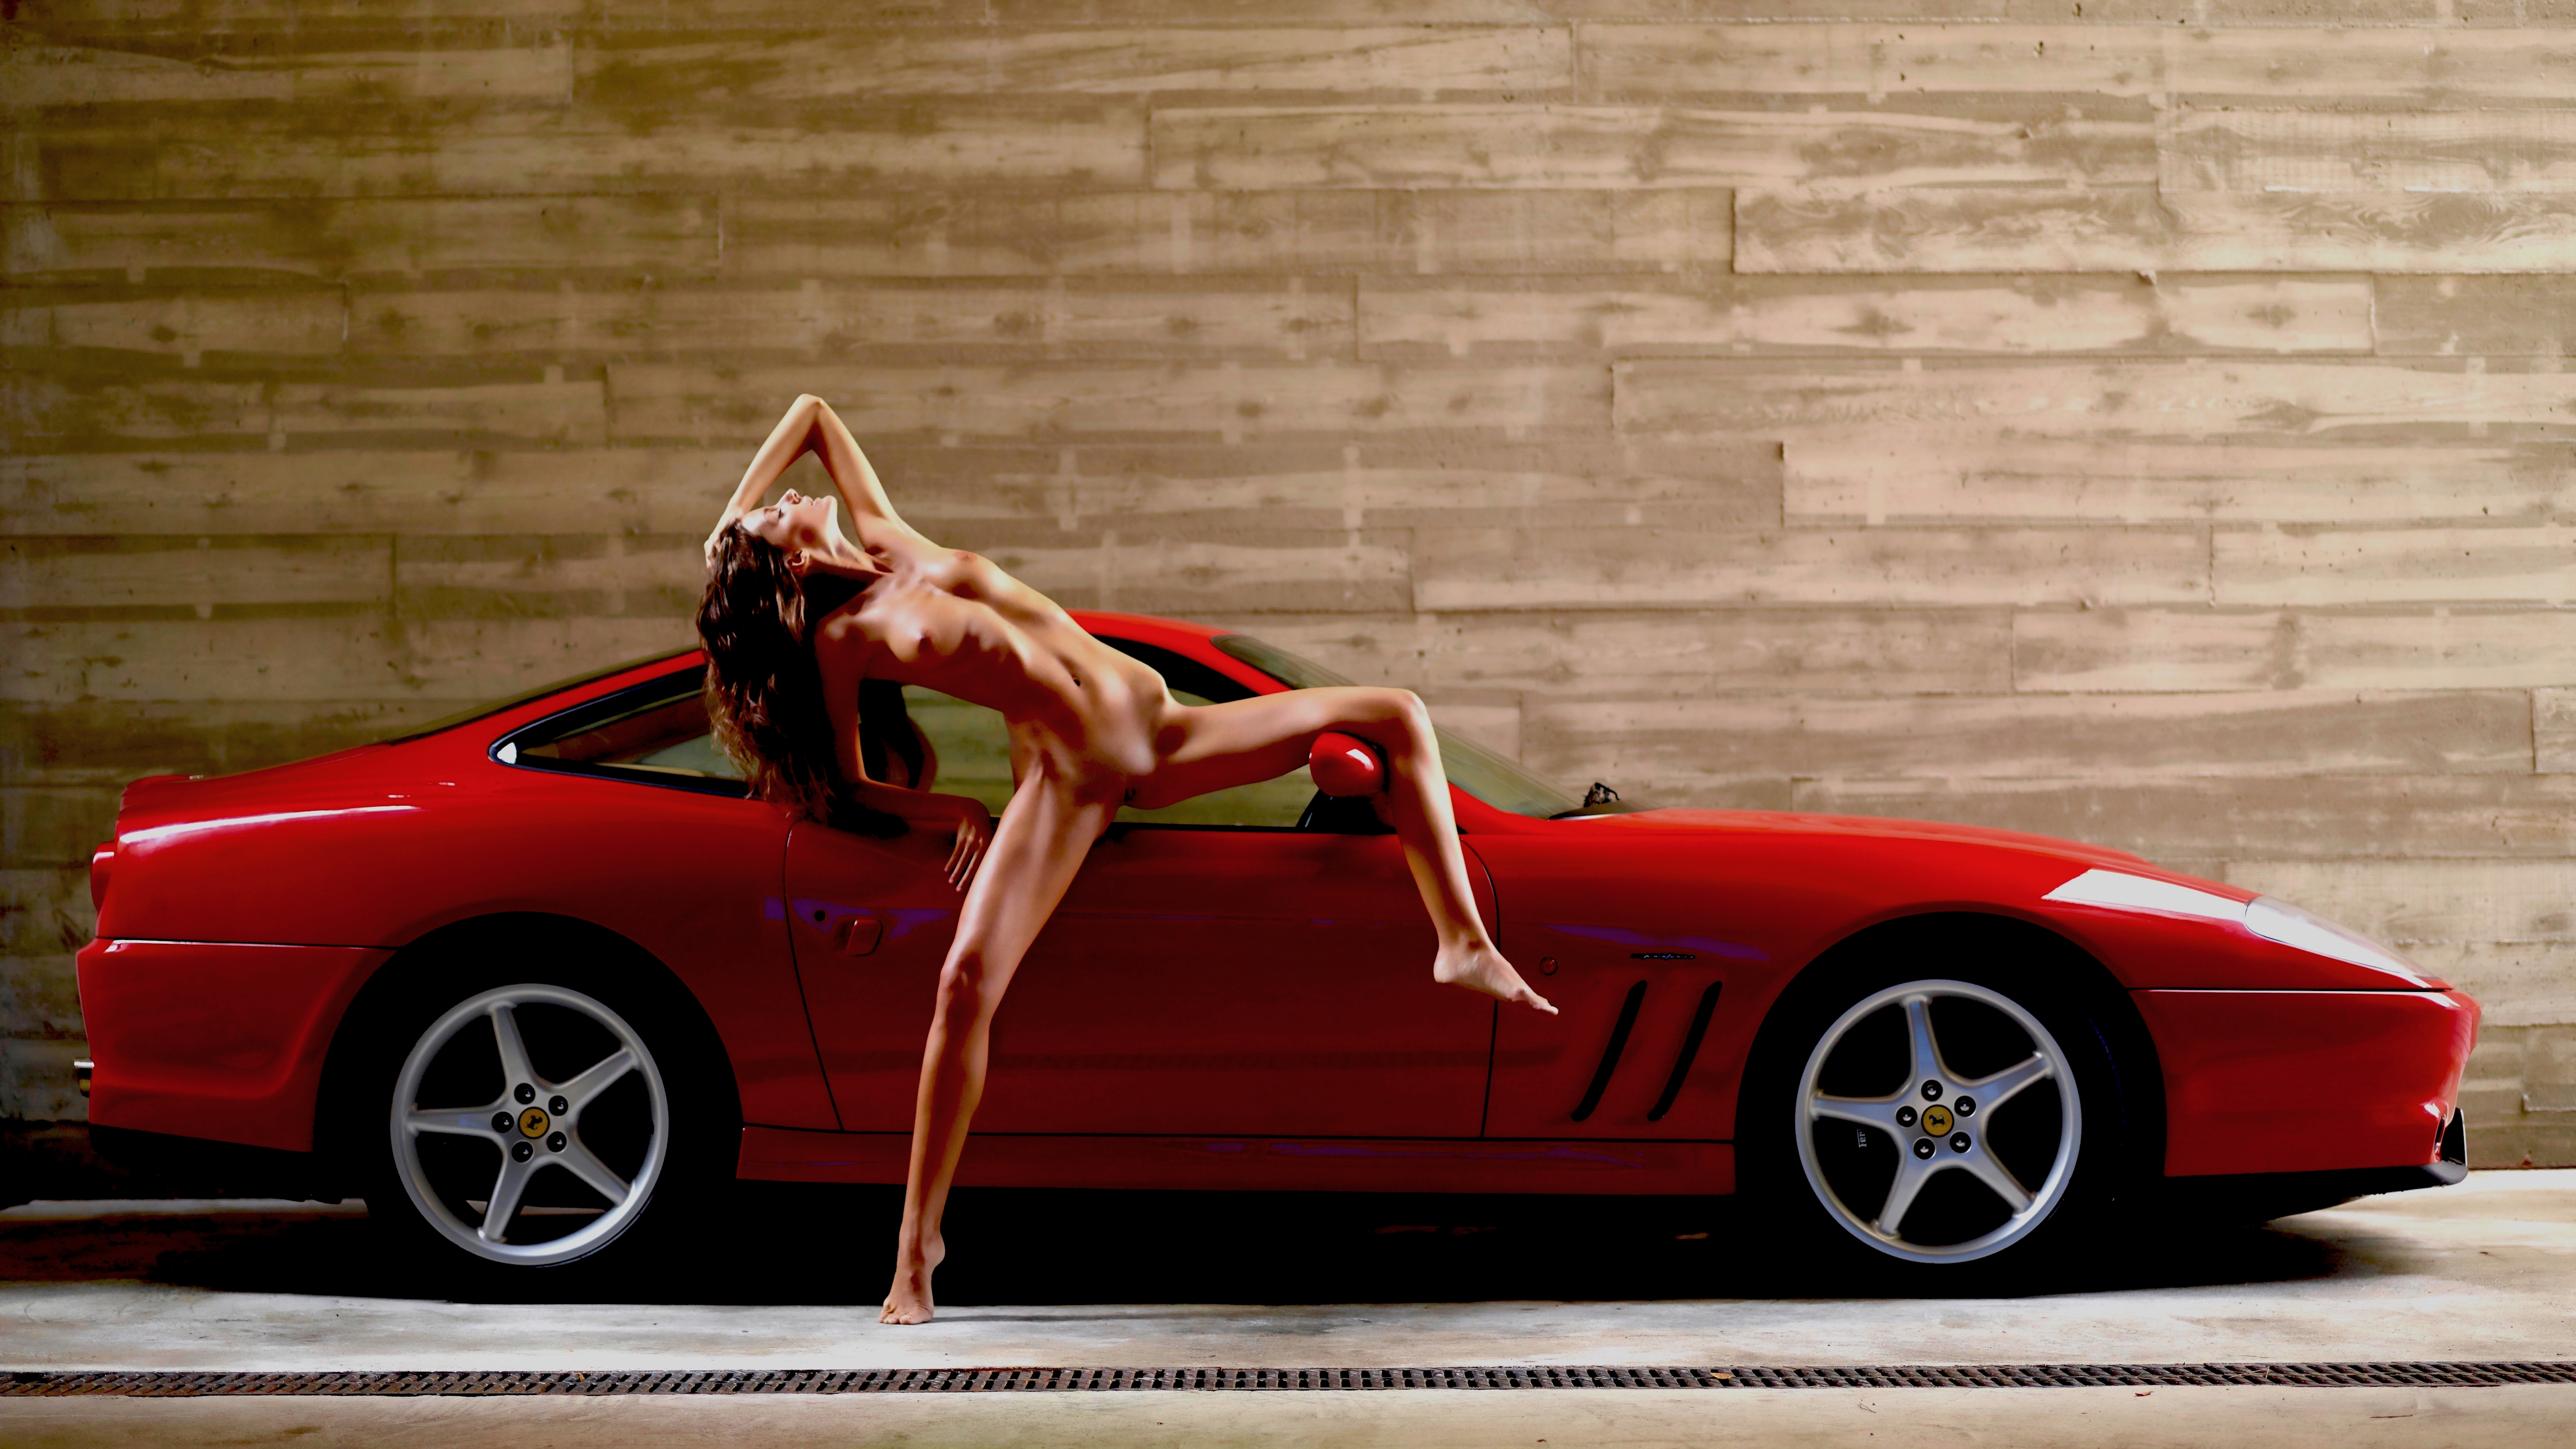 Ferrari And Nude Girl In Heels